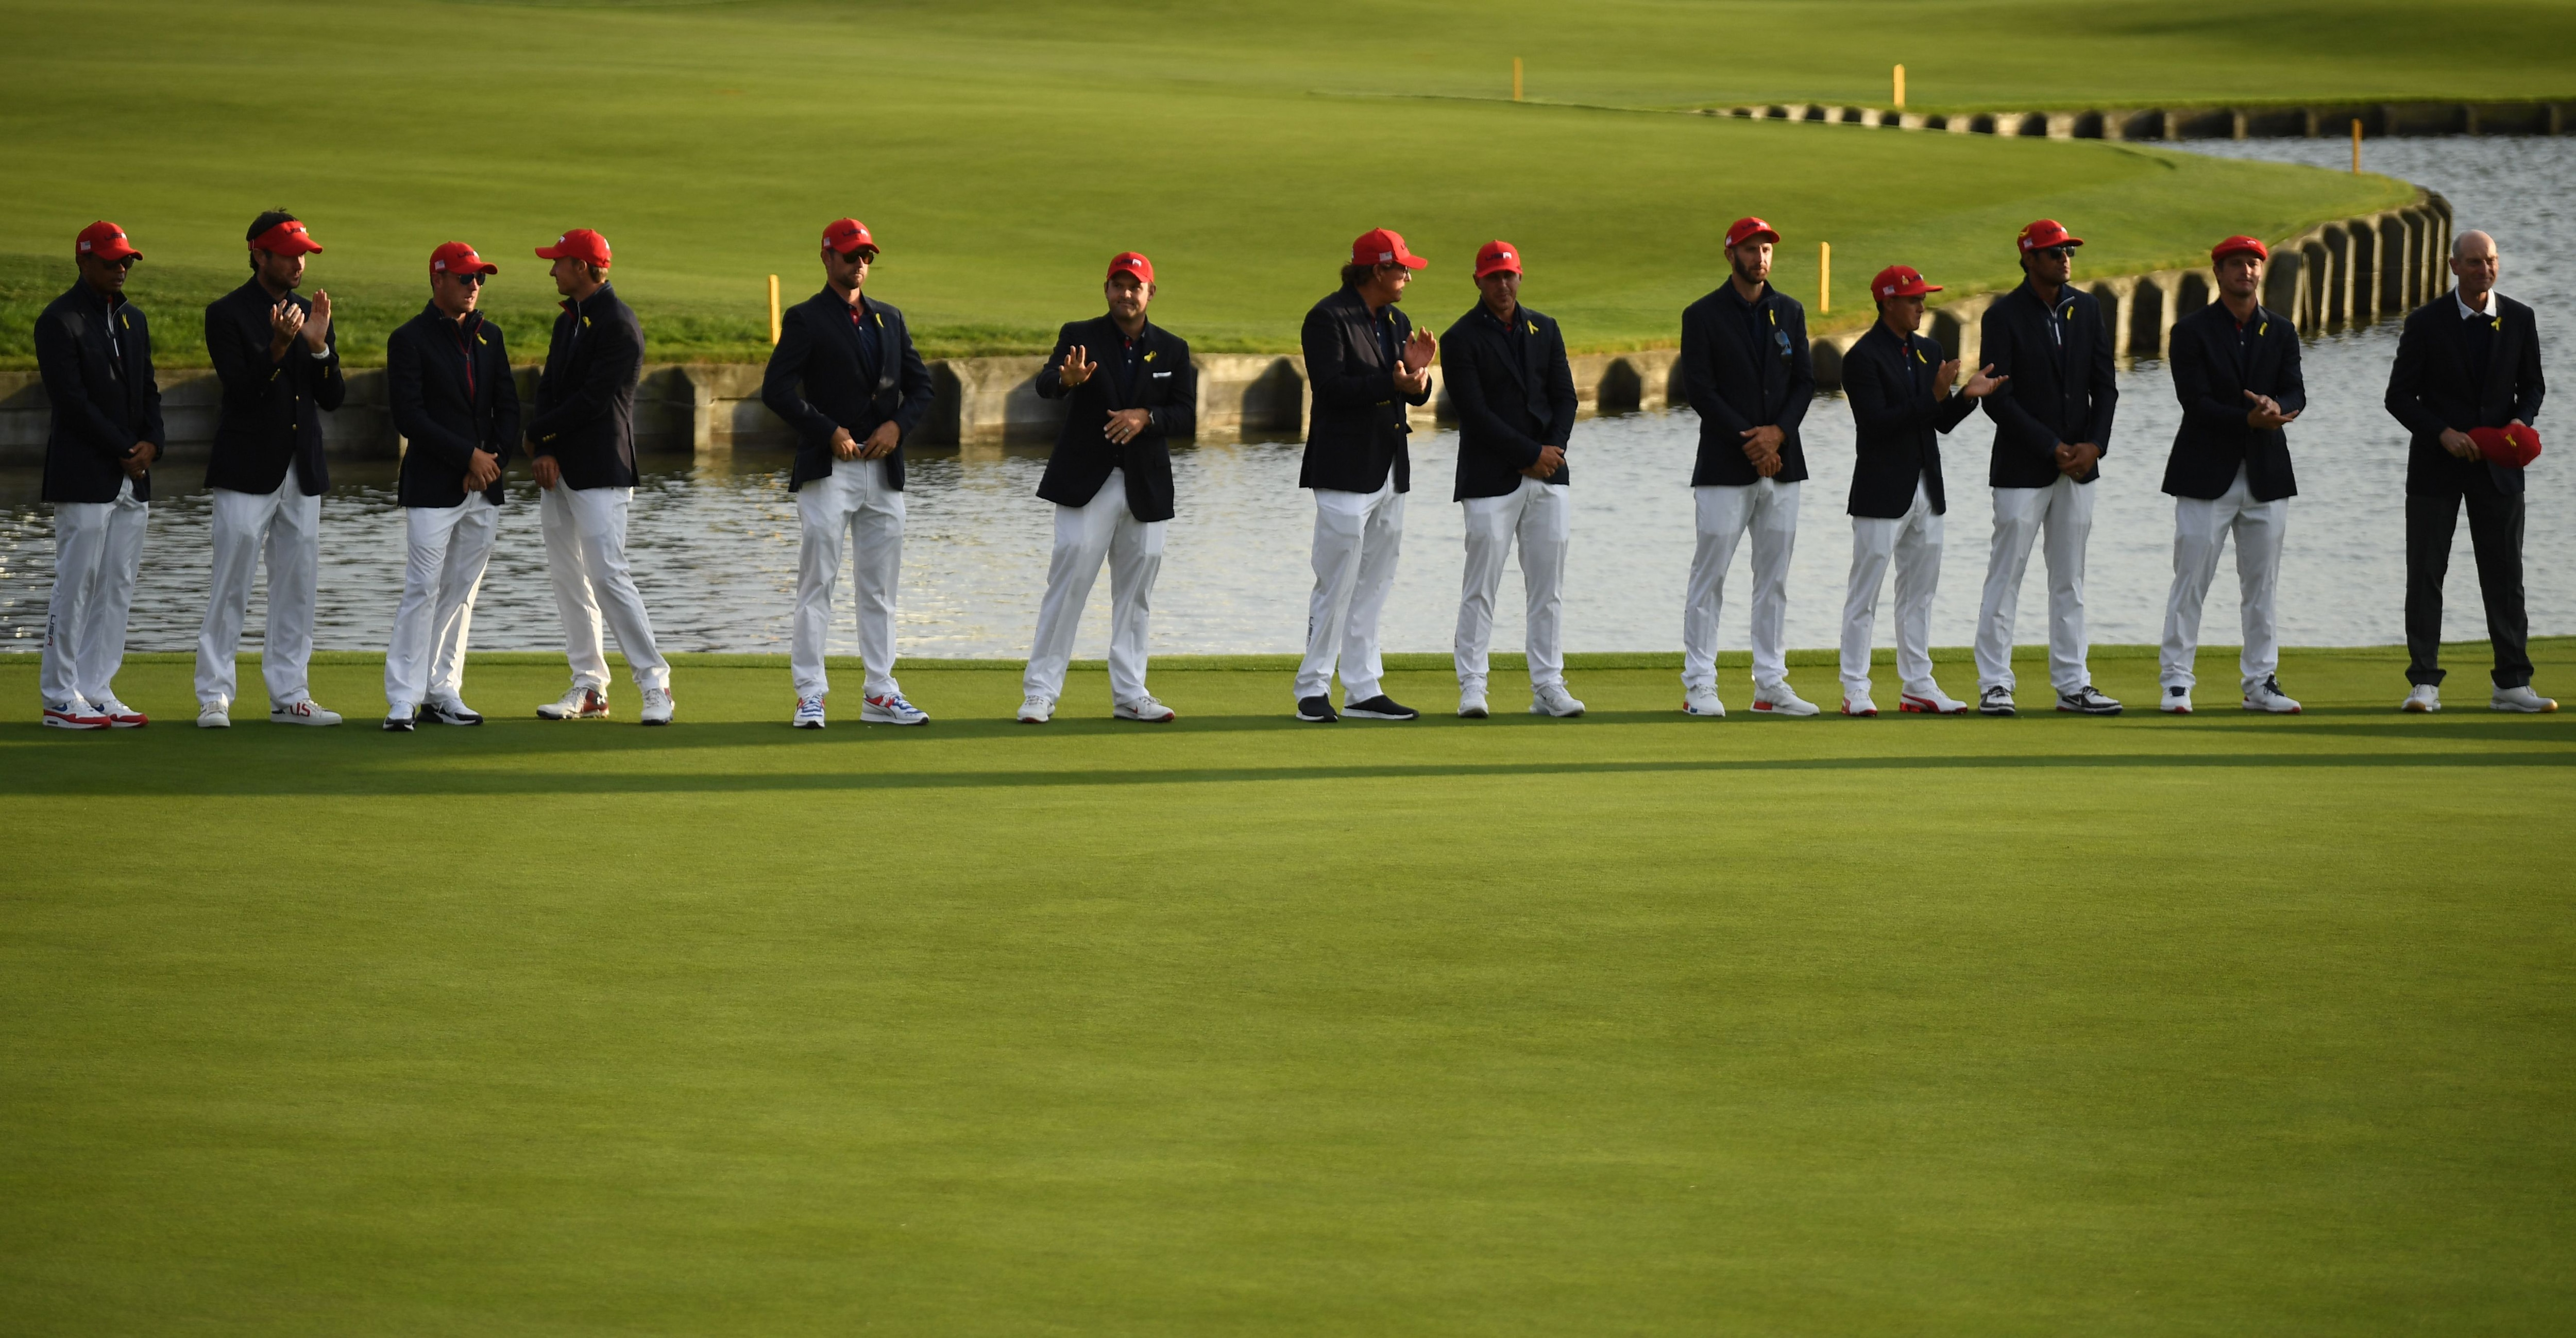 The 2018 U.S. Ryder Cup team